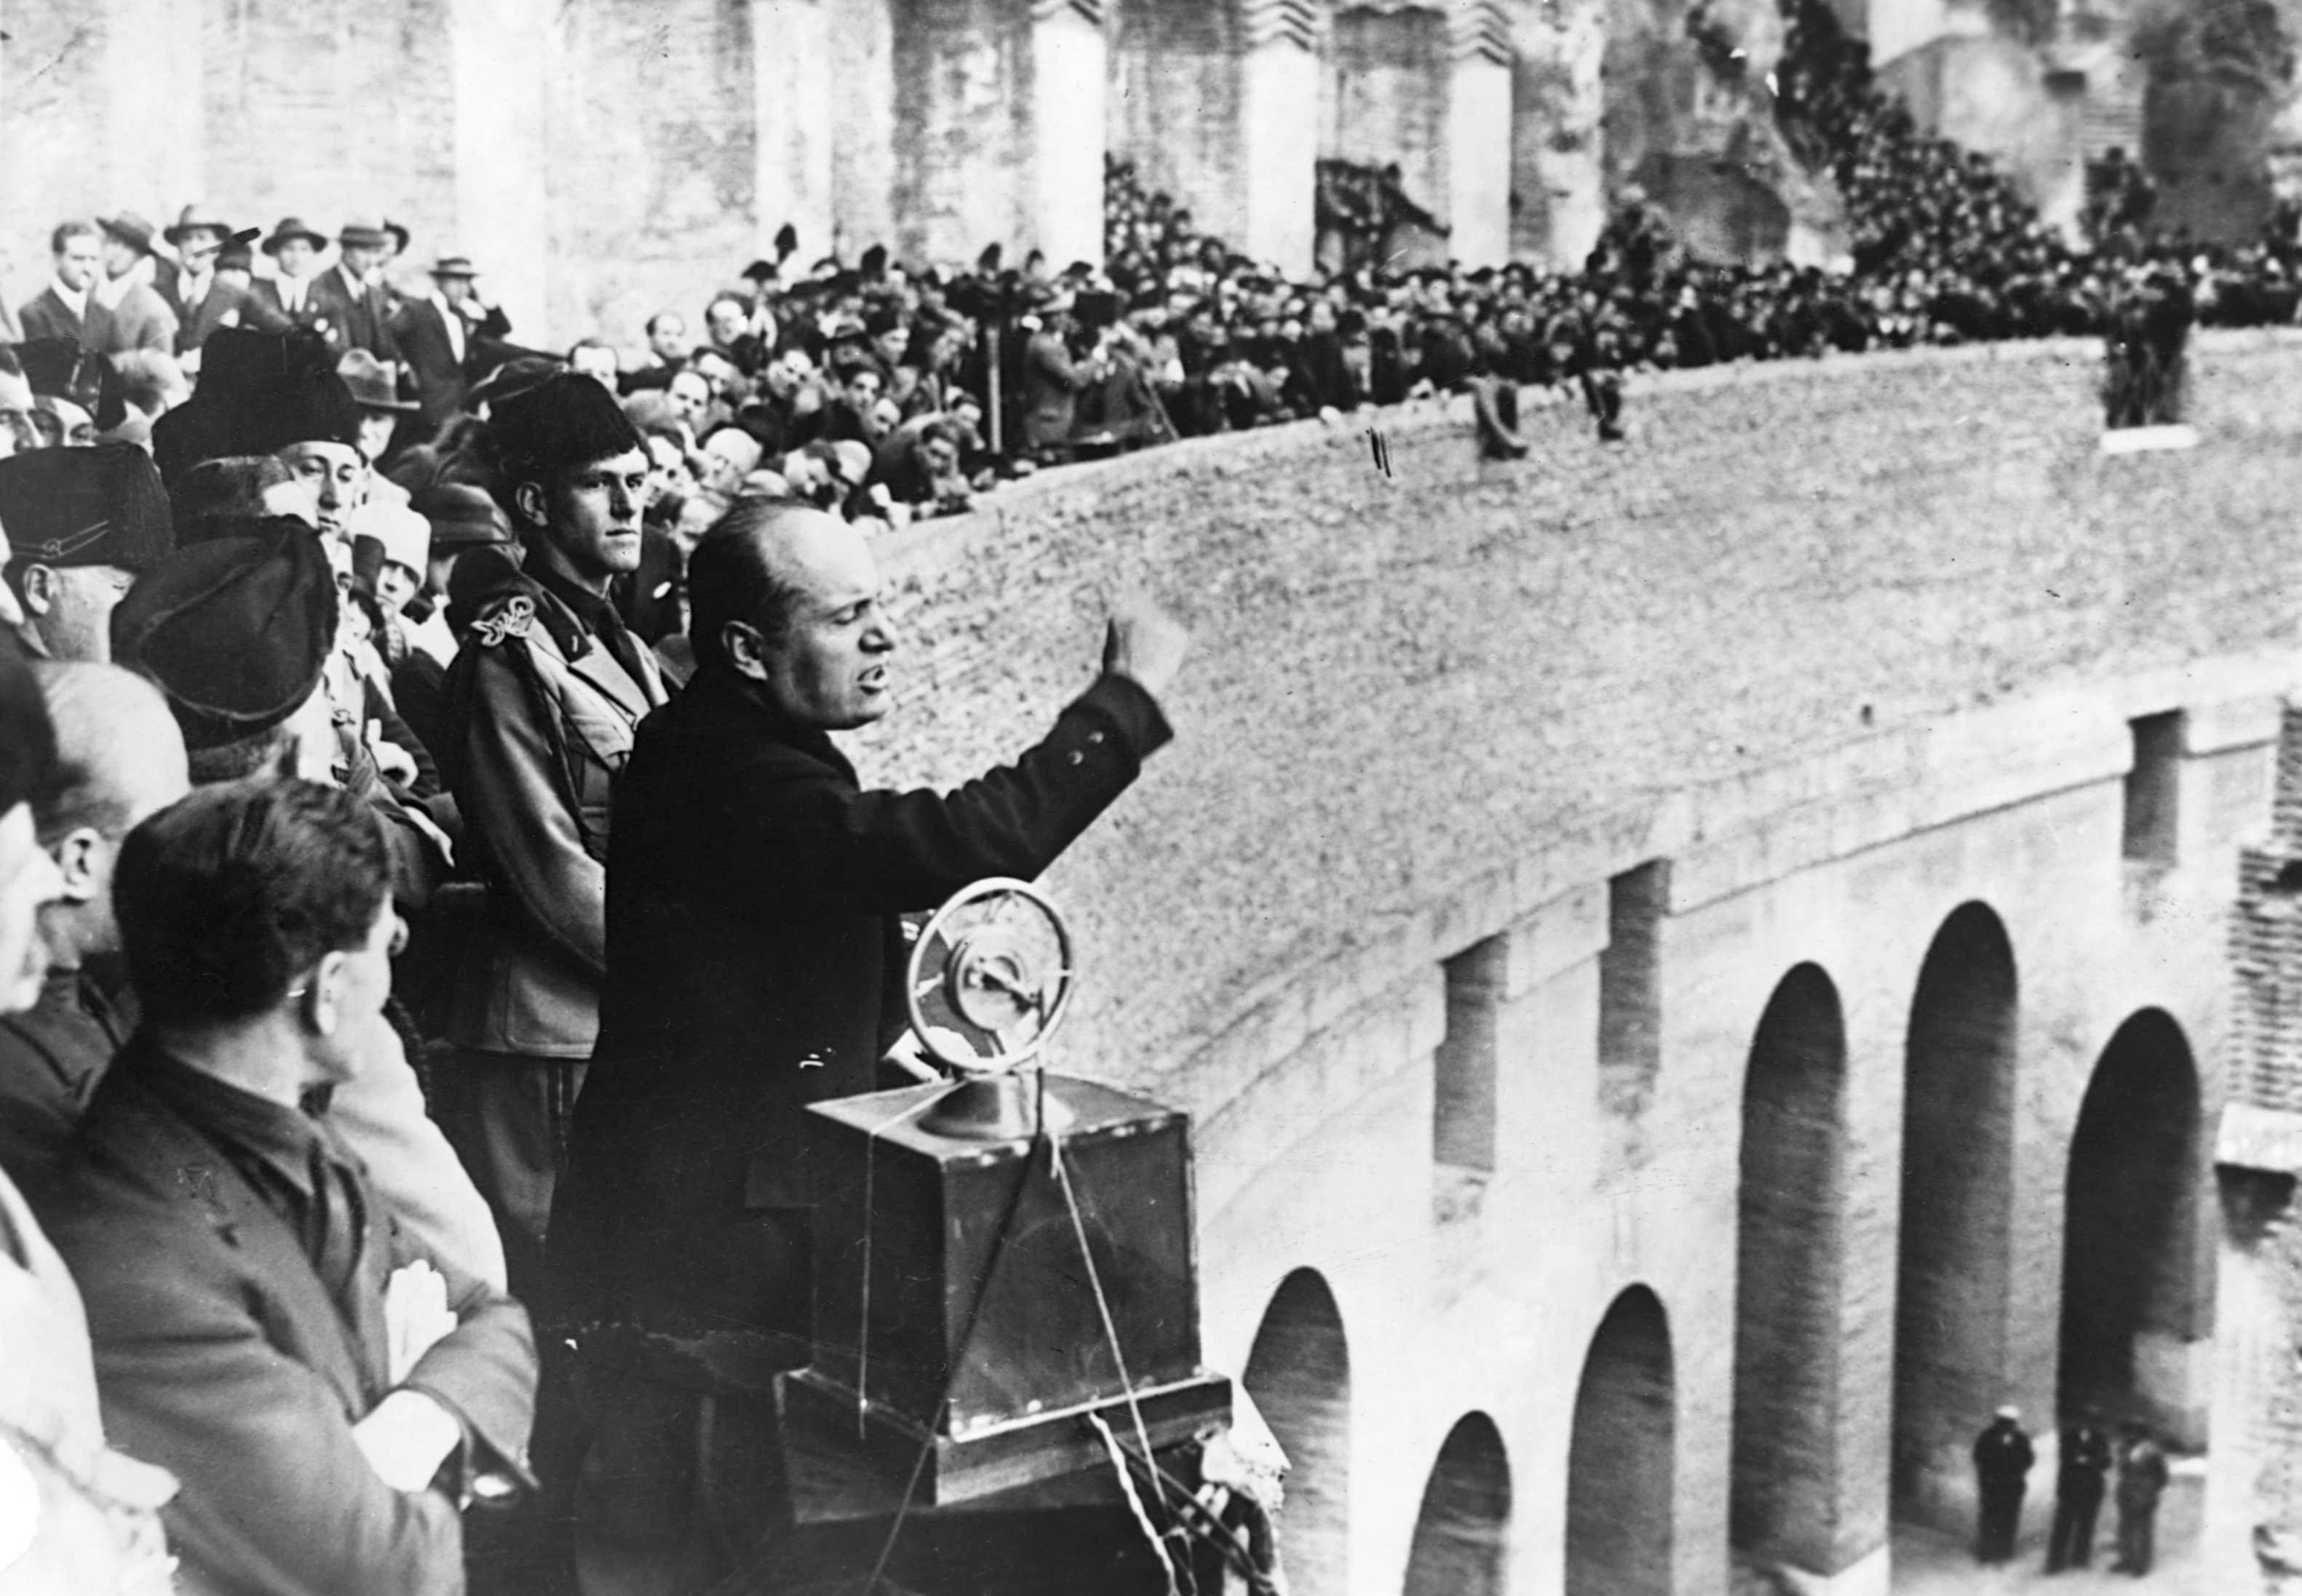 Benito Mussolini makes a speech. (Photo by © CORBIS/Corbis via Getty Images)